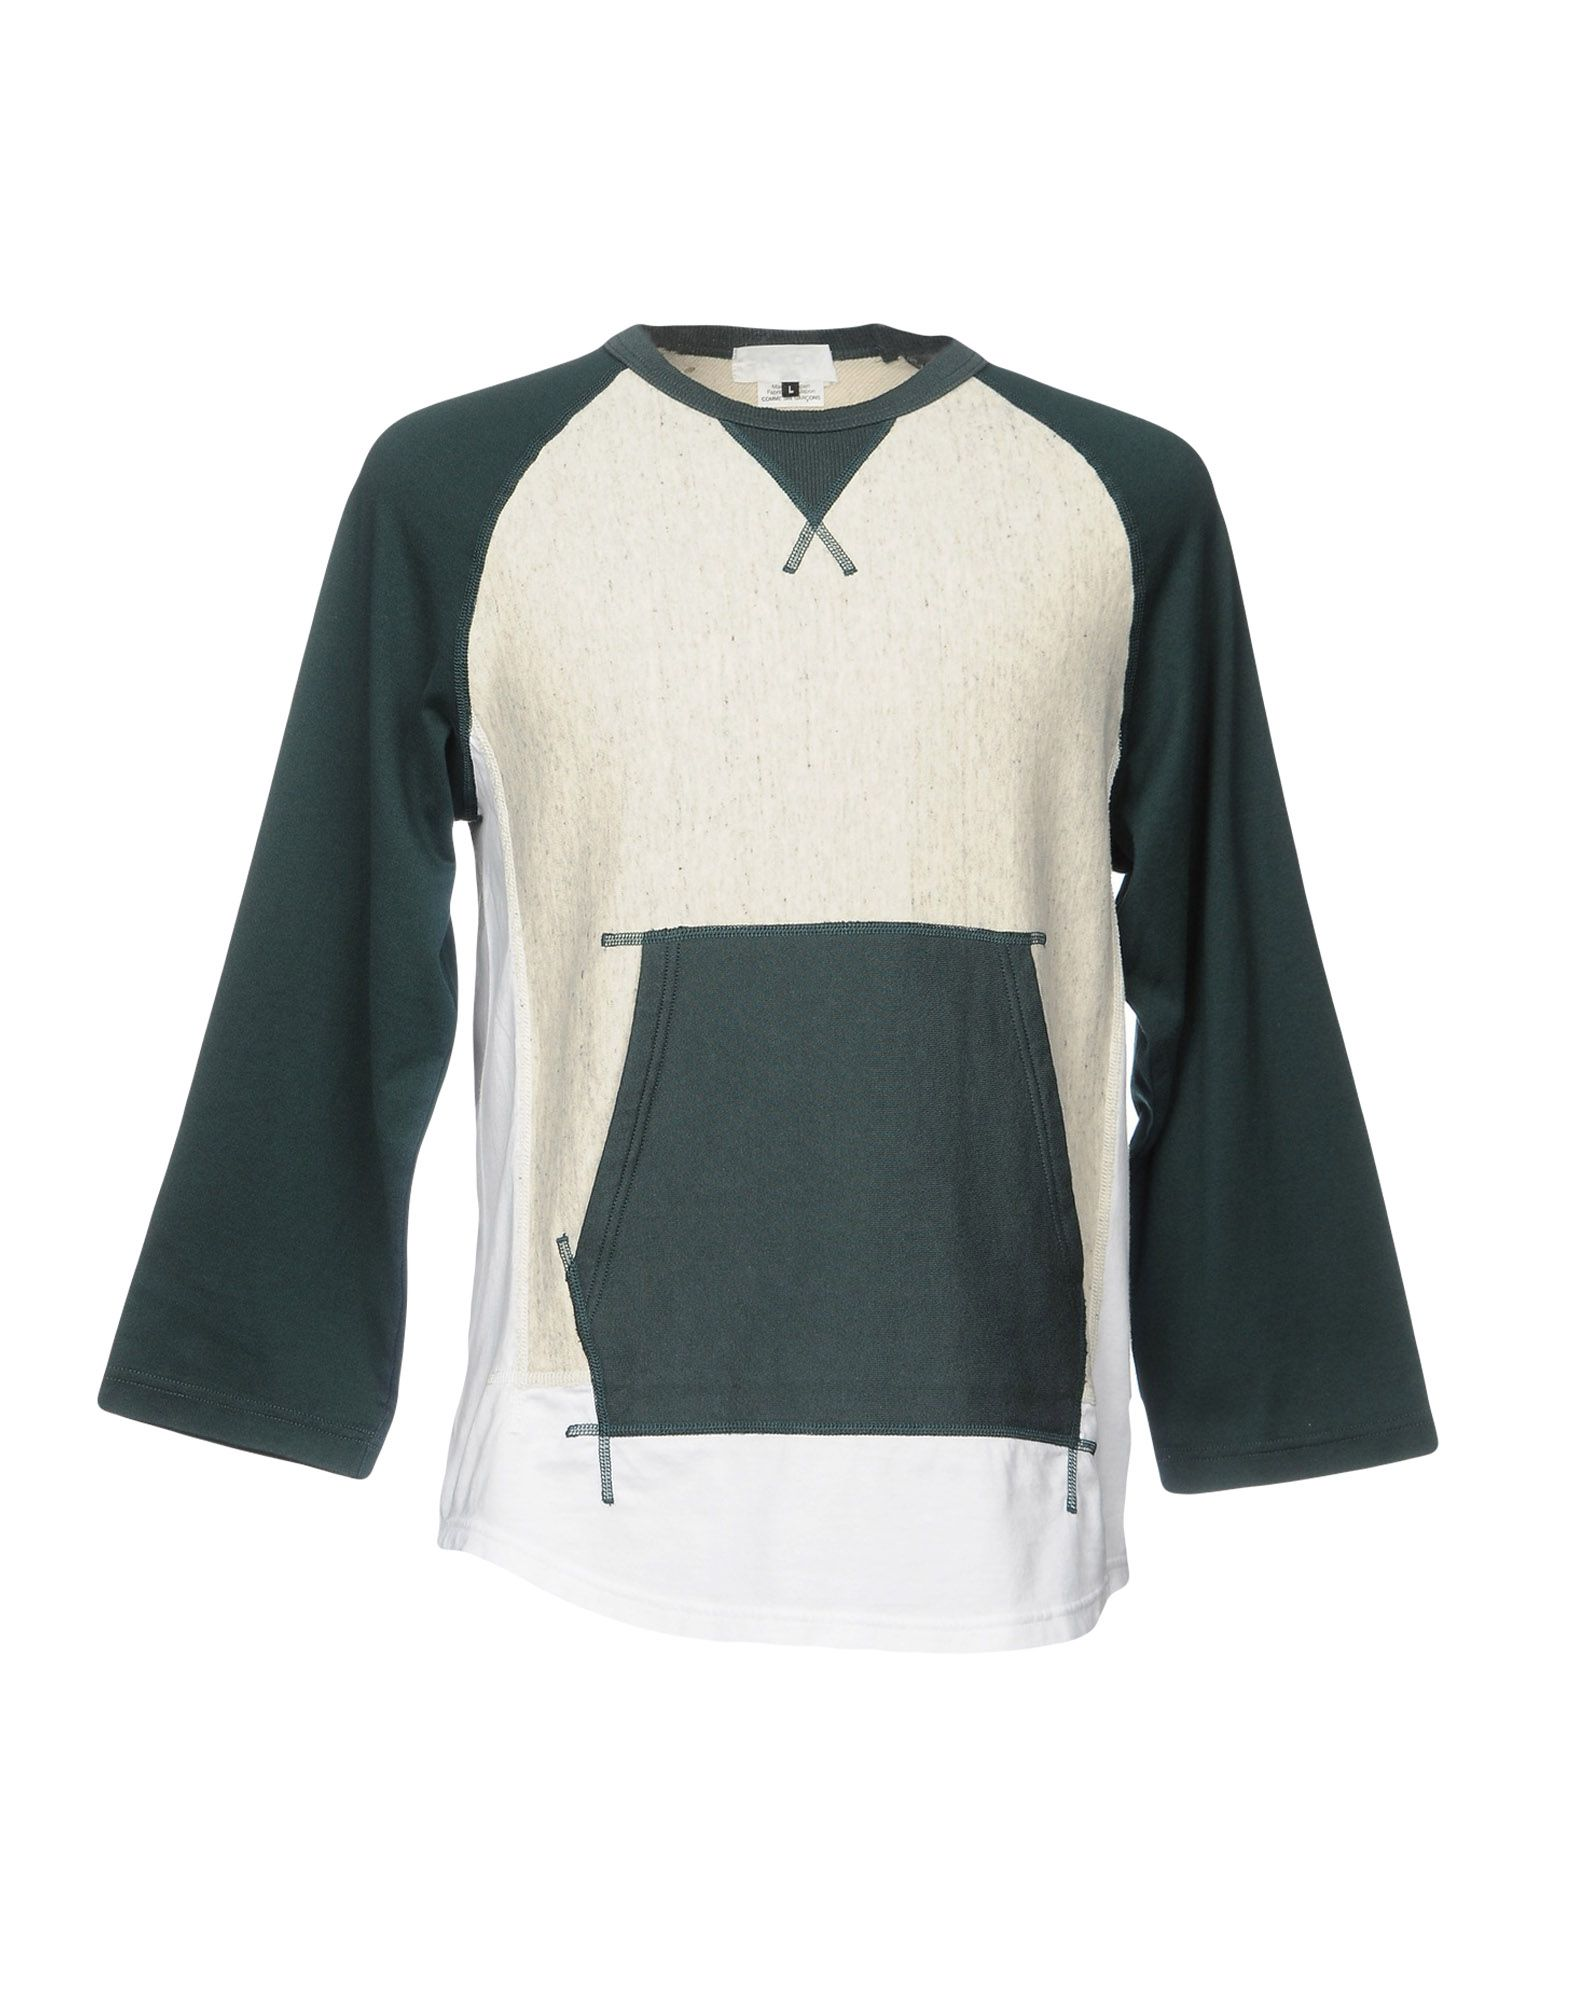 GANRYU Sweatshirt in Green